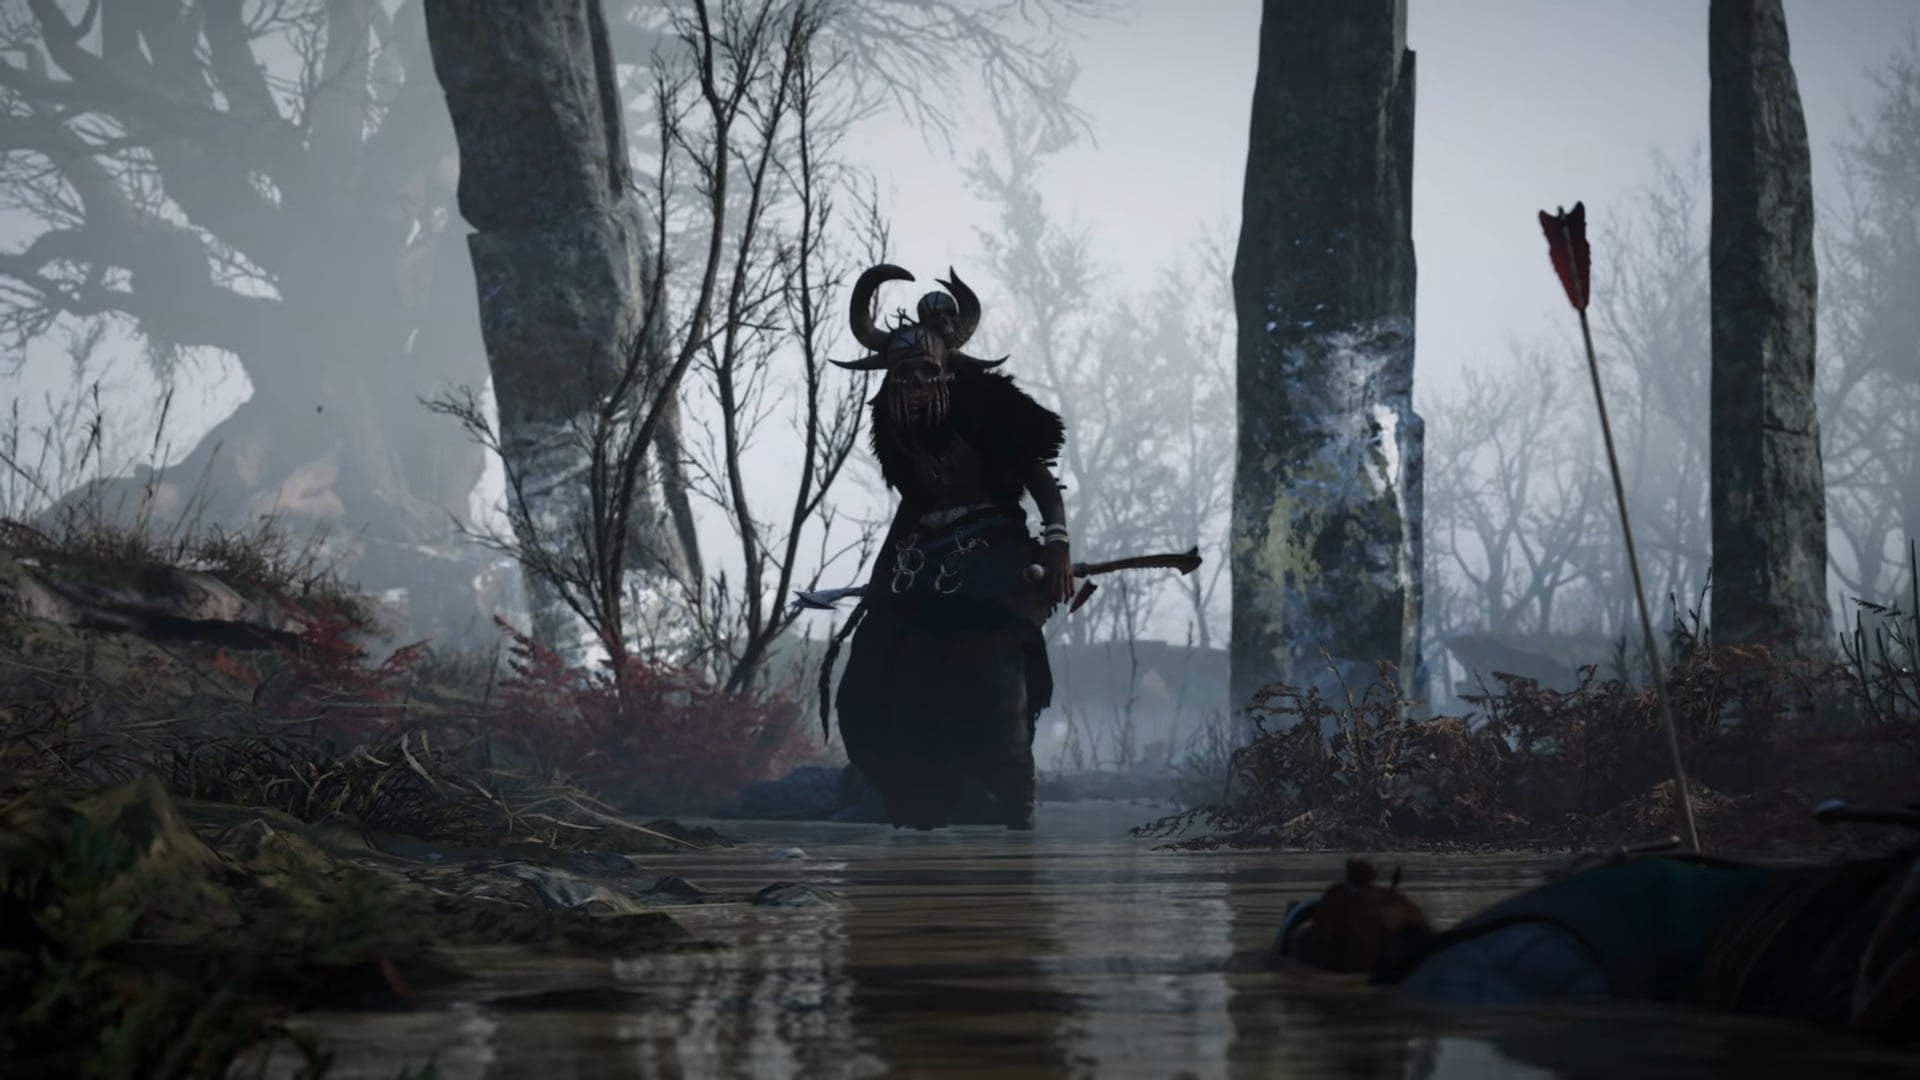 Assassin's Creed Valhalla: The Wrath of the Druids Review - Antagonist